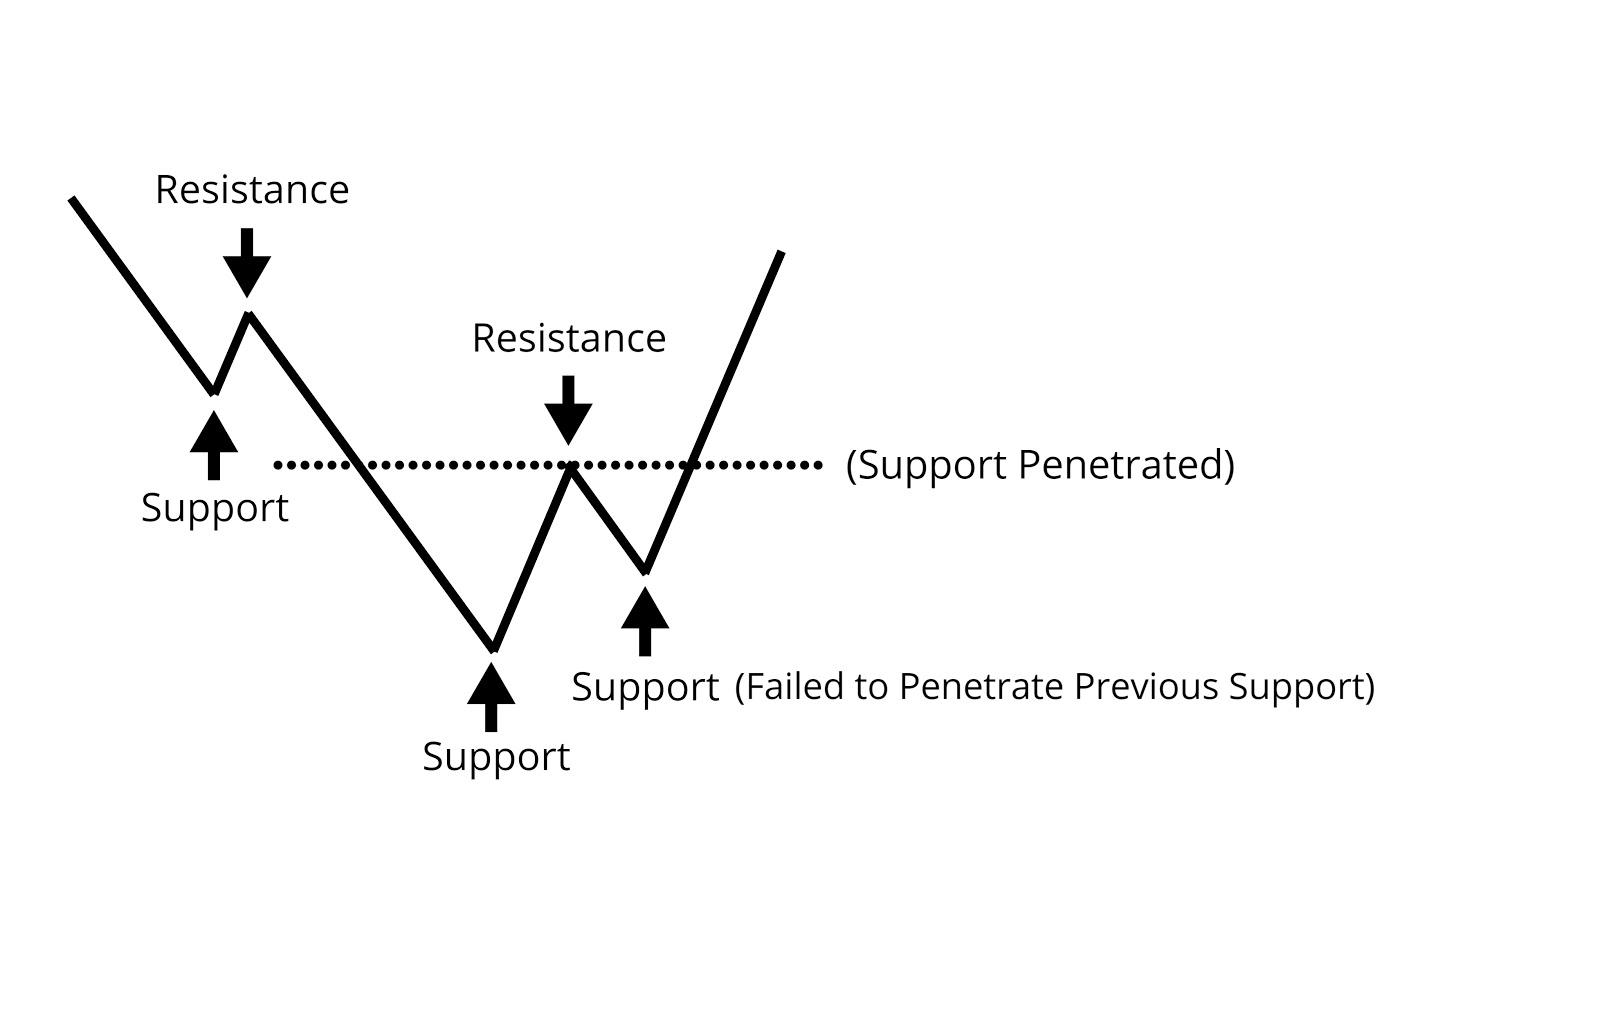 Resistance Level Validly Penetrated - Downtrend